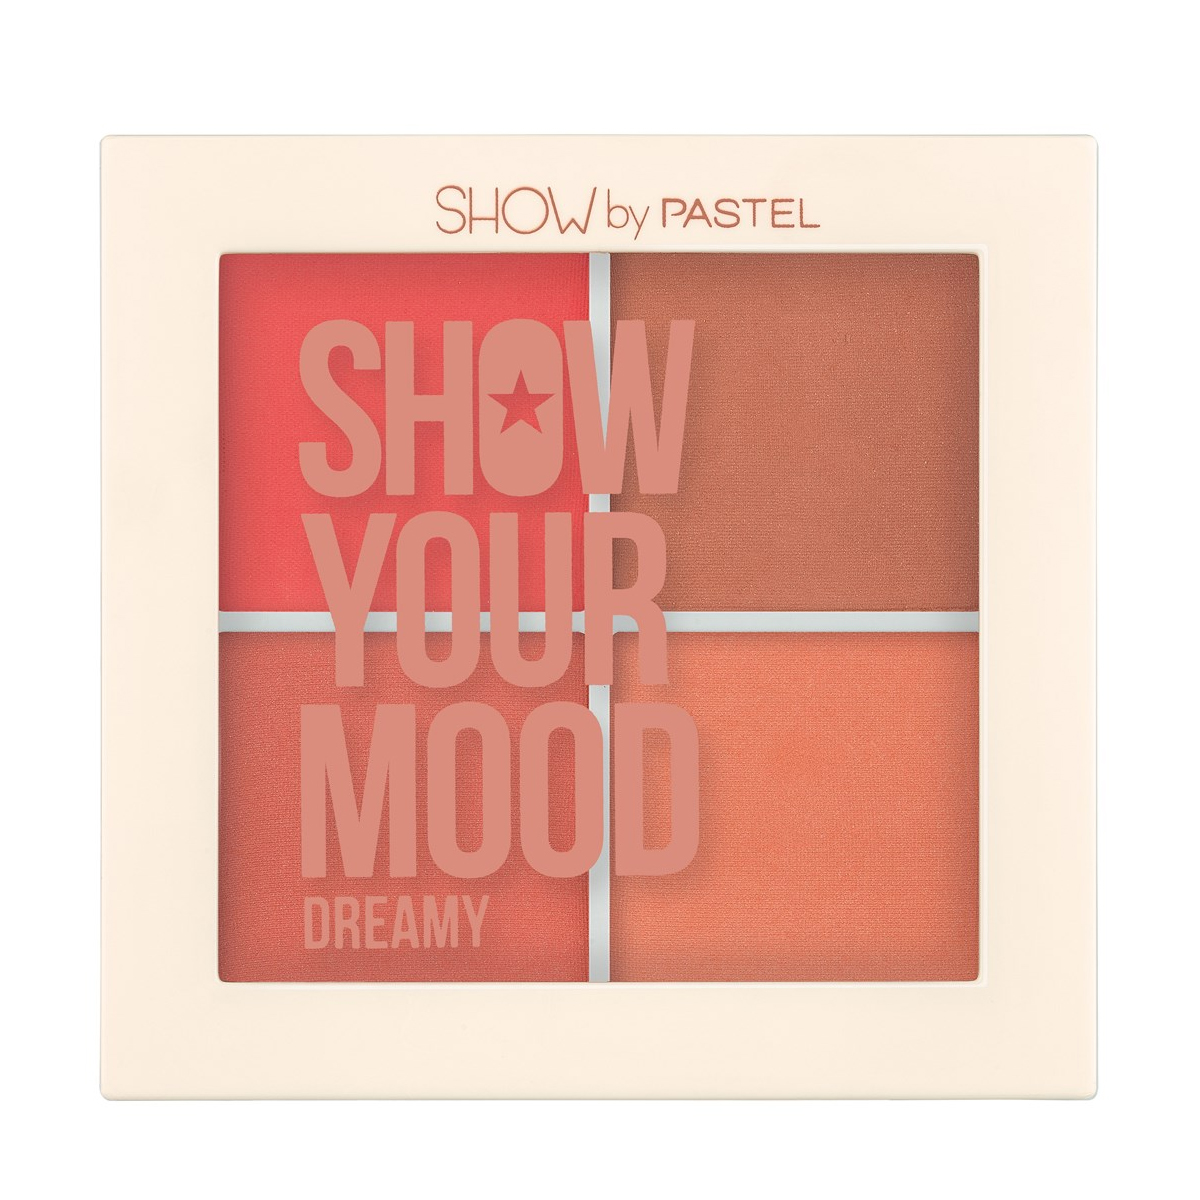 Pastel Show By Pastel Show Your Mood Dreamy Allık Seti